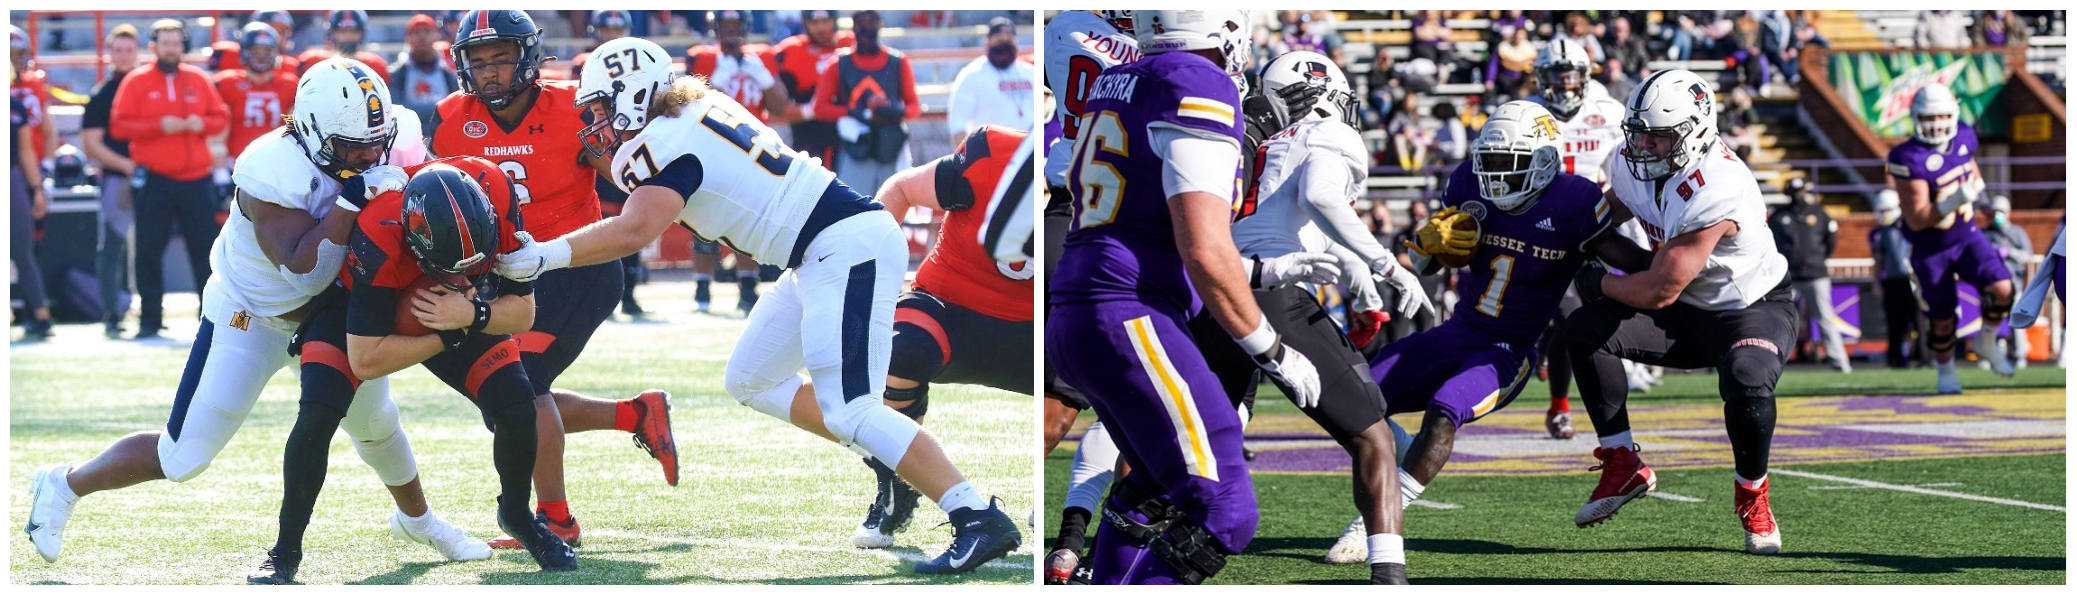 Former teammates Kenneth Martin (left) and Eric Johanning (right) match up as rivals on Saturday, April 3. | APSU AND MURRAY STATE ATHLETICS